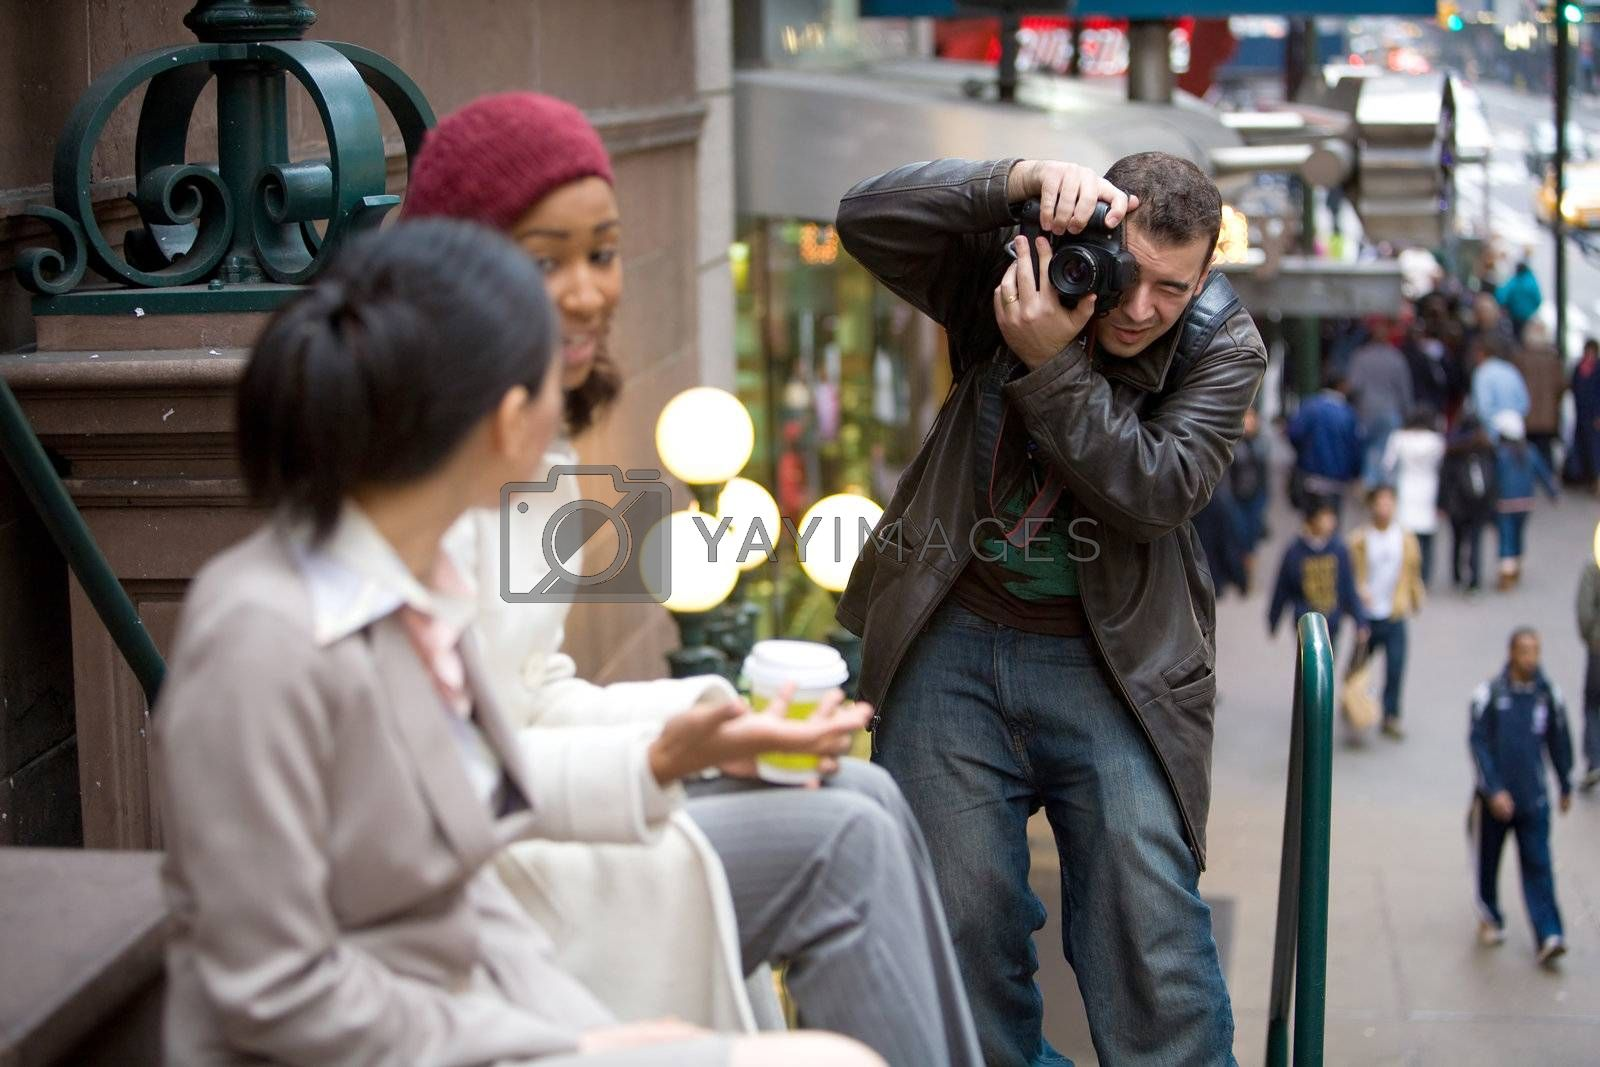 Commercial stock photographer during a photo shoot.  Shallow depth of field.